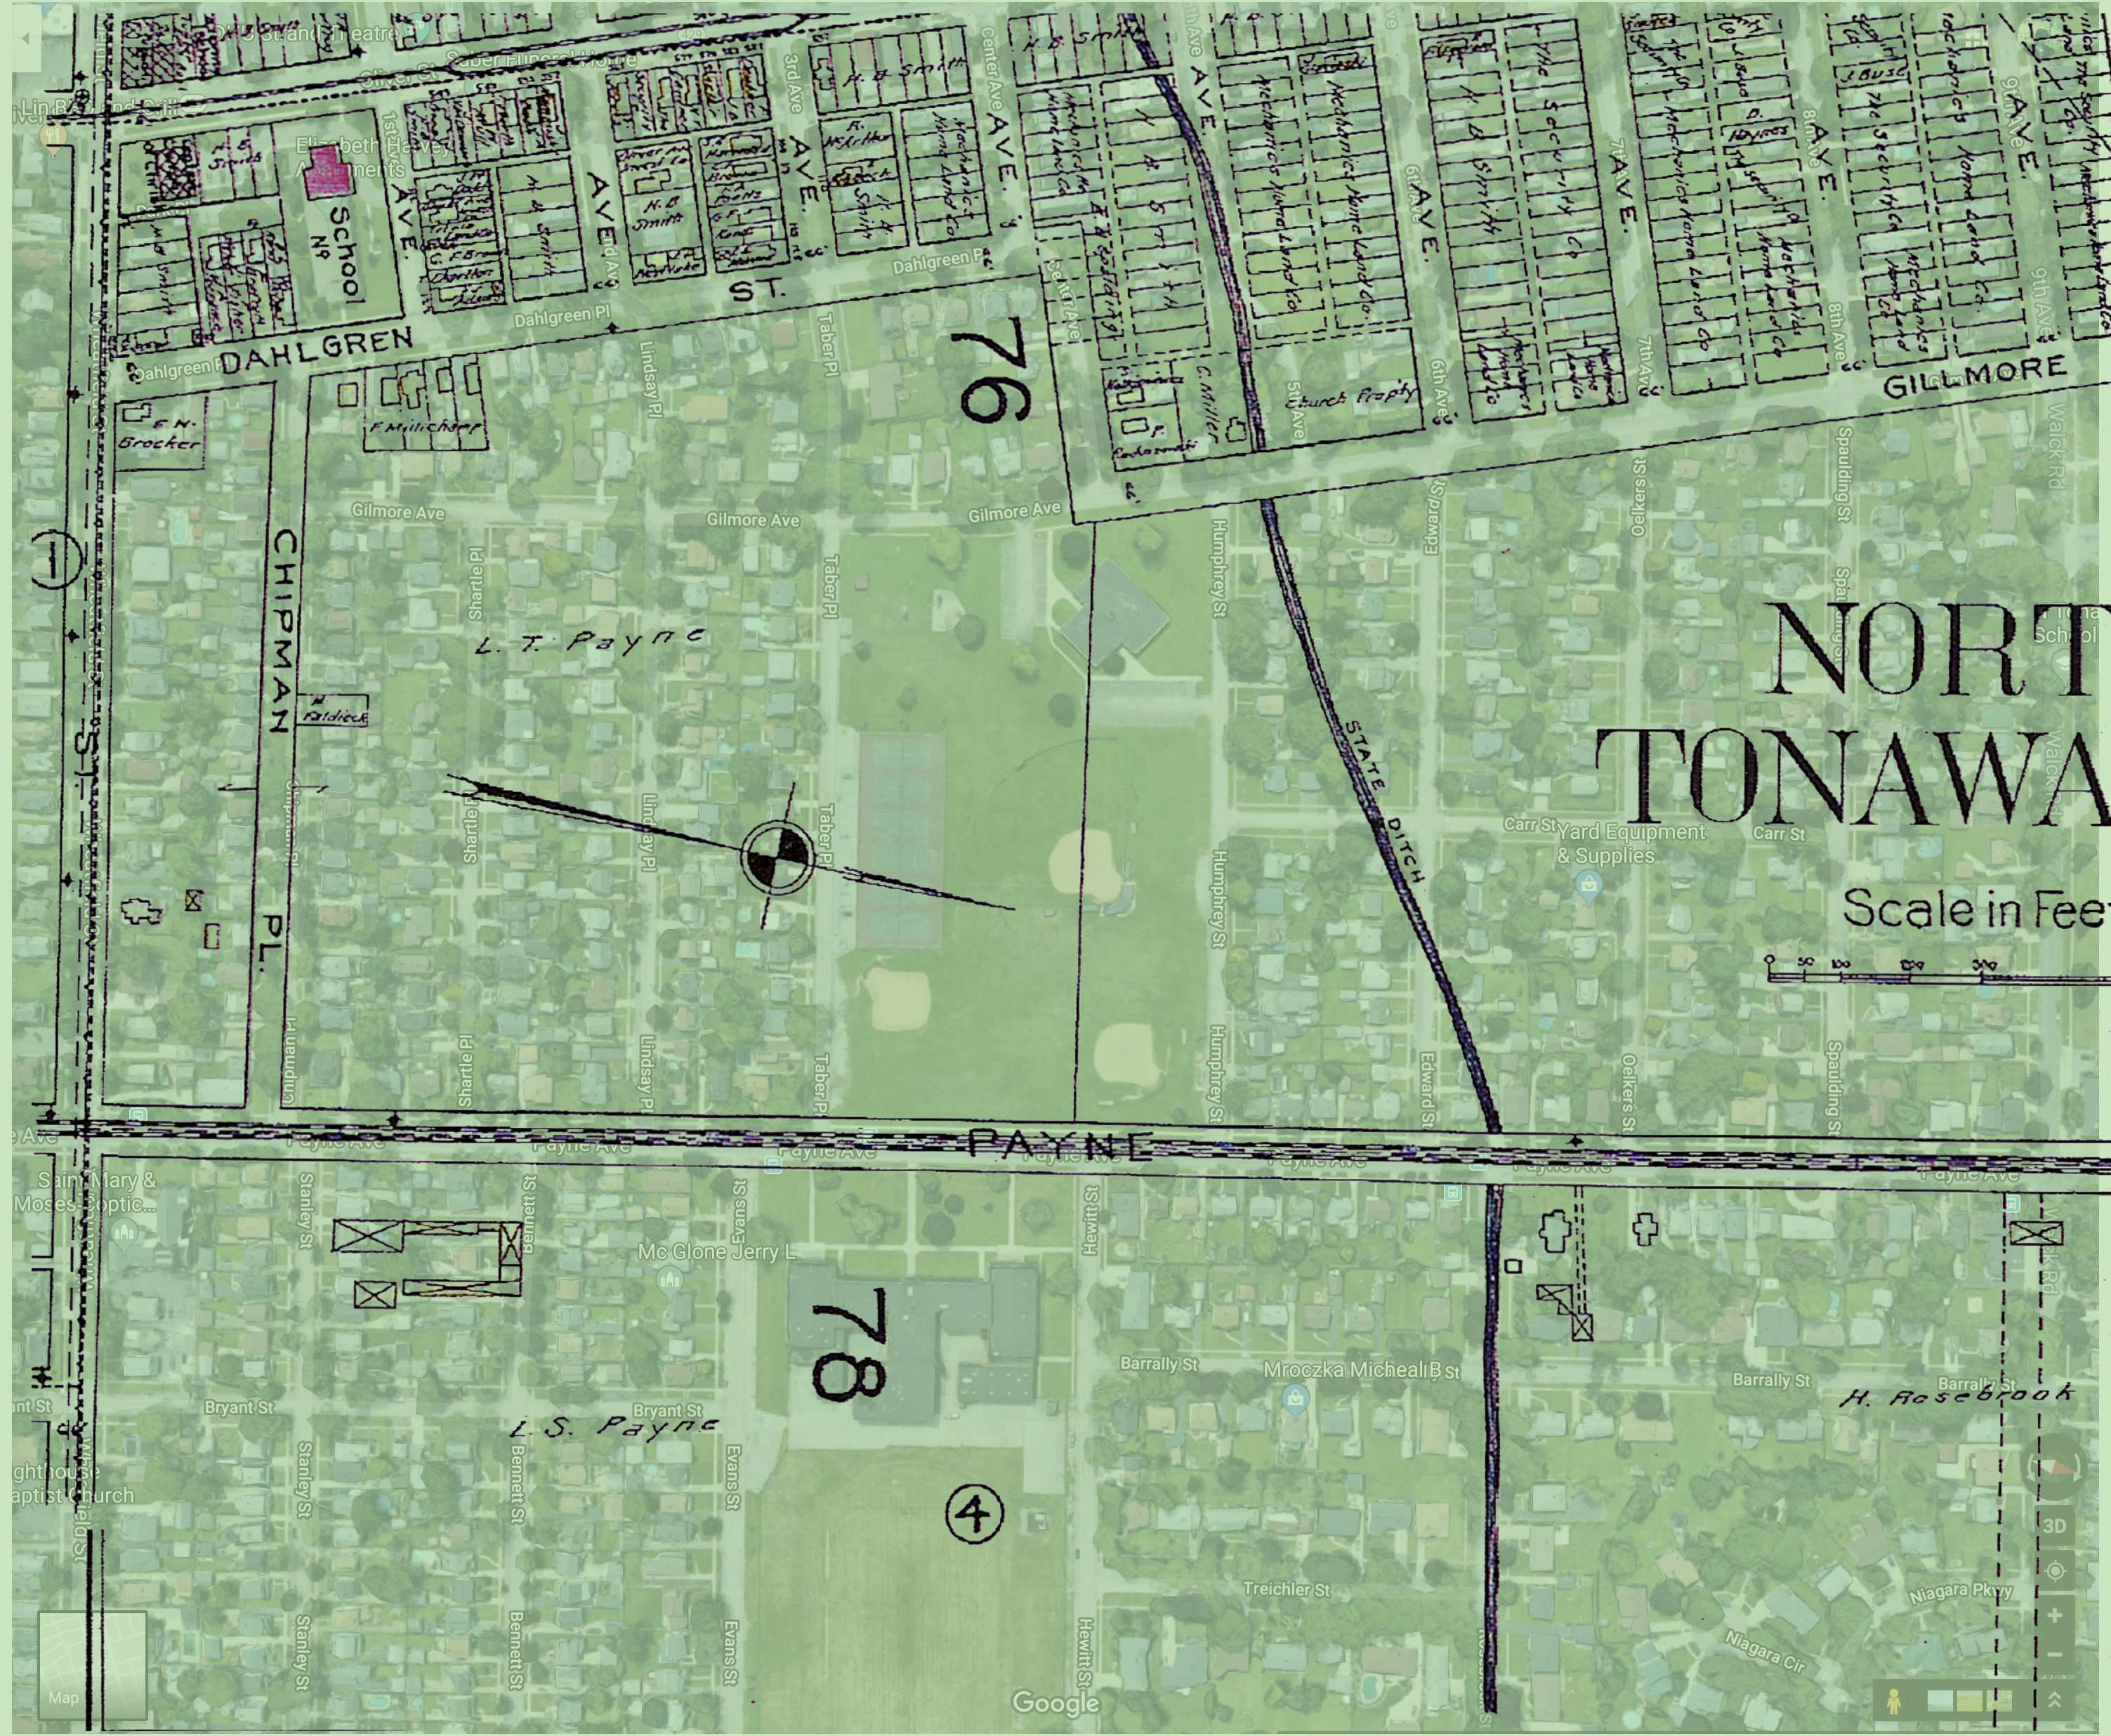 Payne Acres - 1908 map overlaying 2019 satellite image.jpg